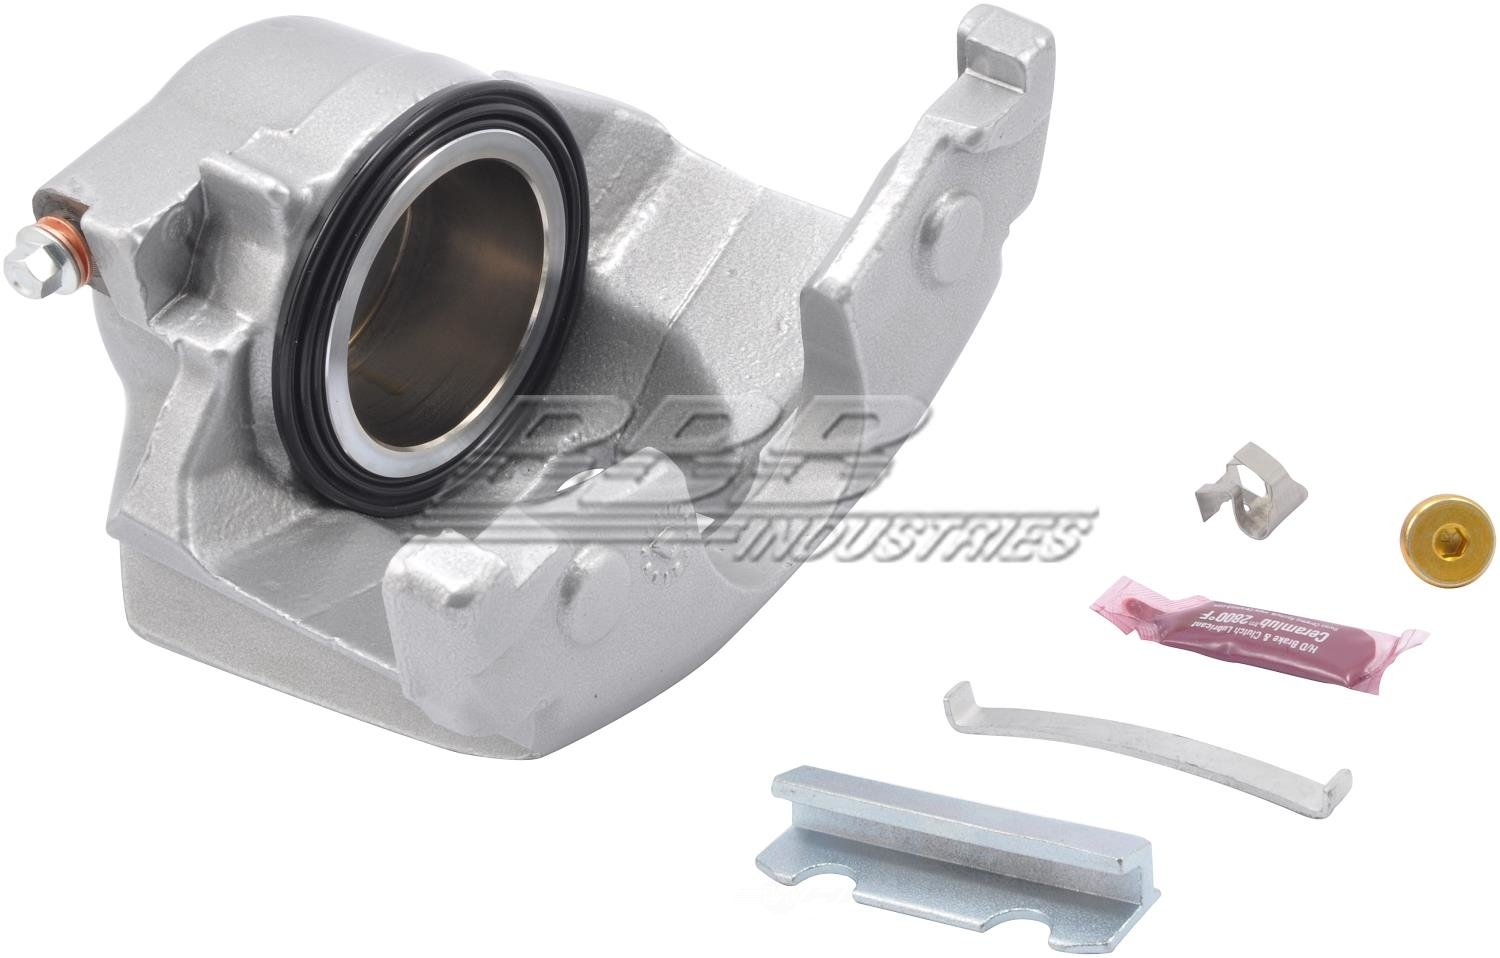 BBB INDUSTRIES - Reman Caliper w/ Installation Hardware - BBA 97-17632A